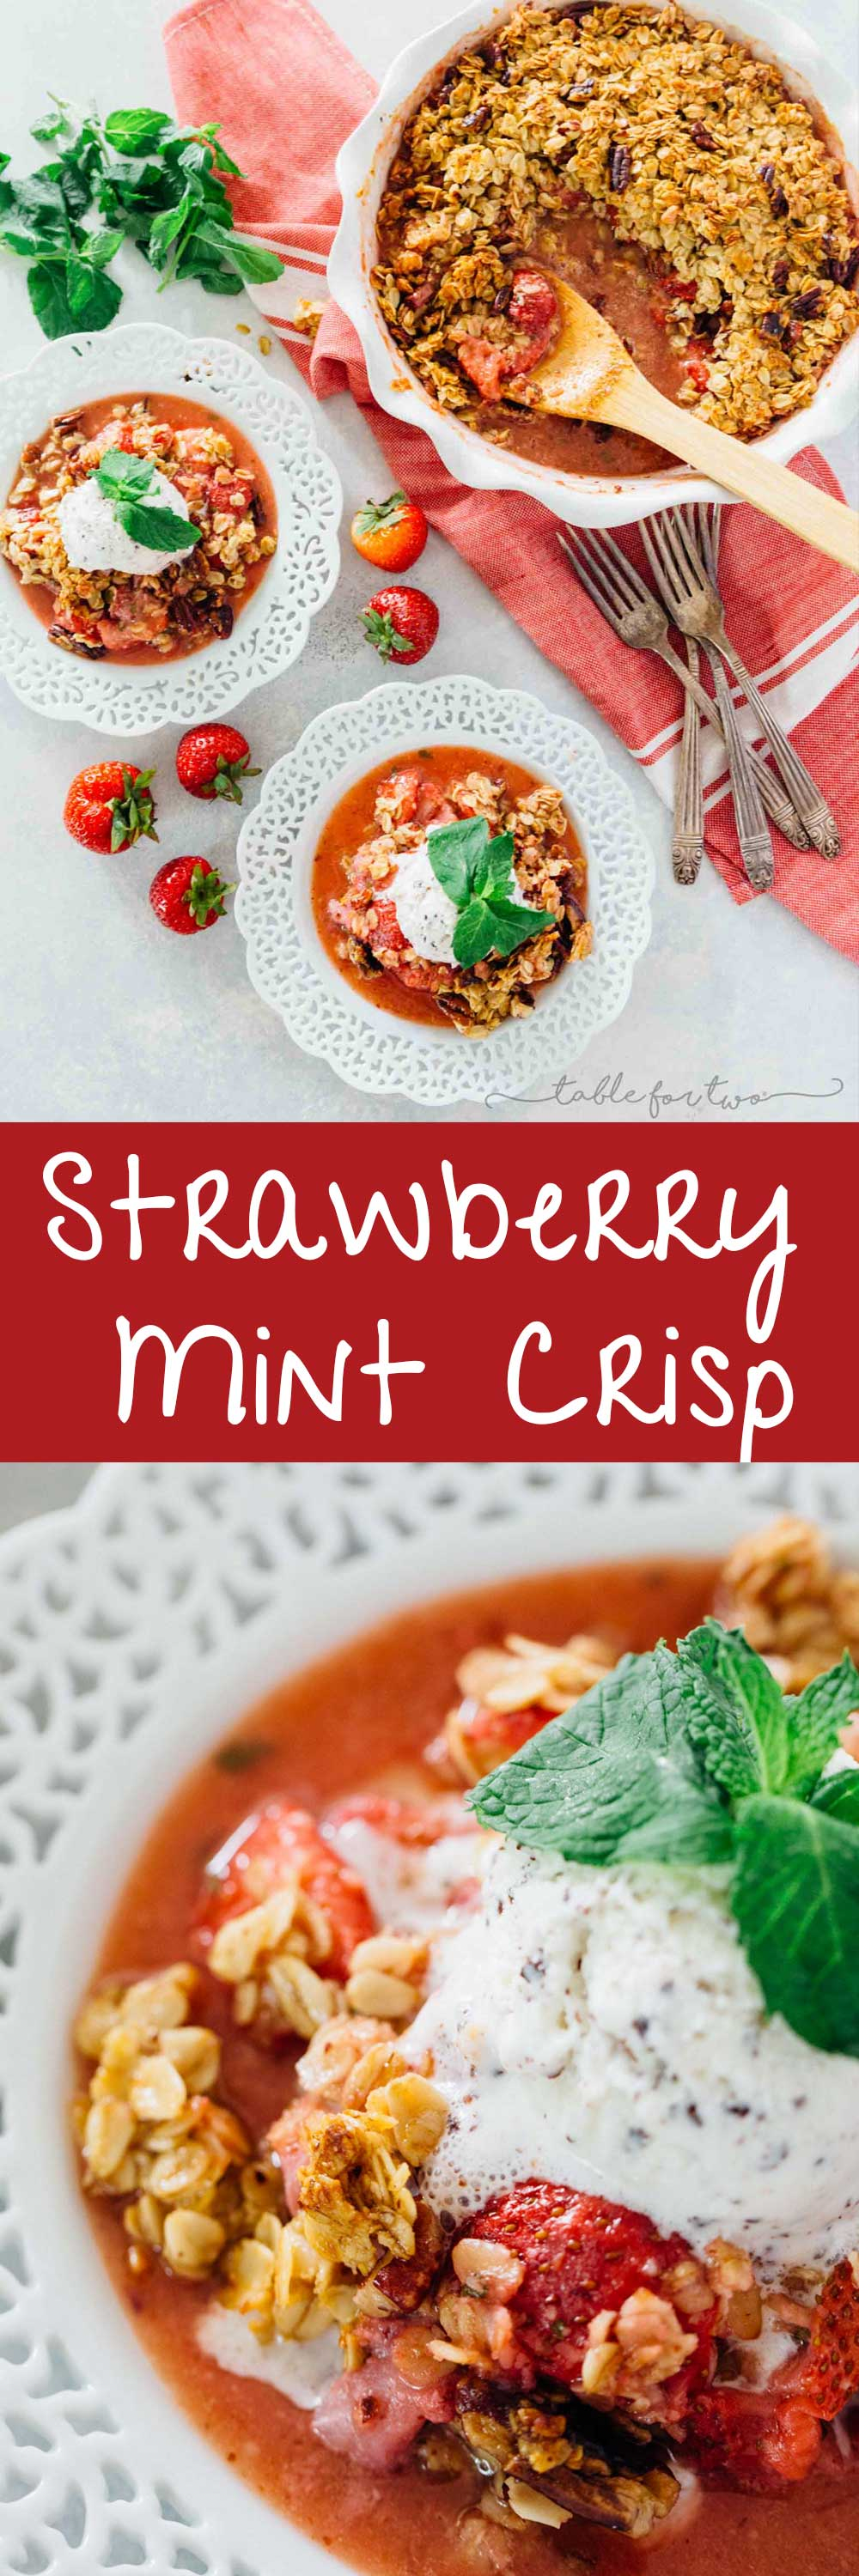 A quick and easy way to use up all your fresh mint from the garden and the fresh strawberries of the season! Strawberry mint crisp is an easy dessert with the most flavorful crisp topping! Don't forget the ice cream scoop on top!